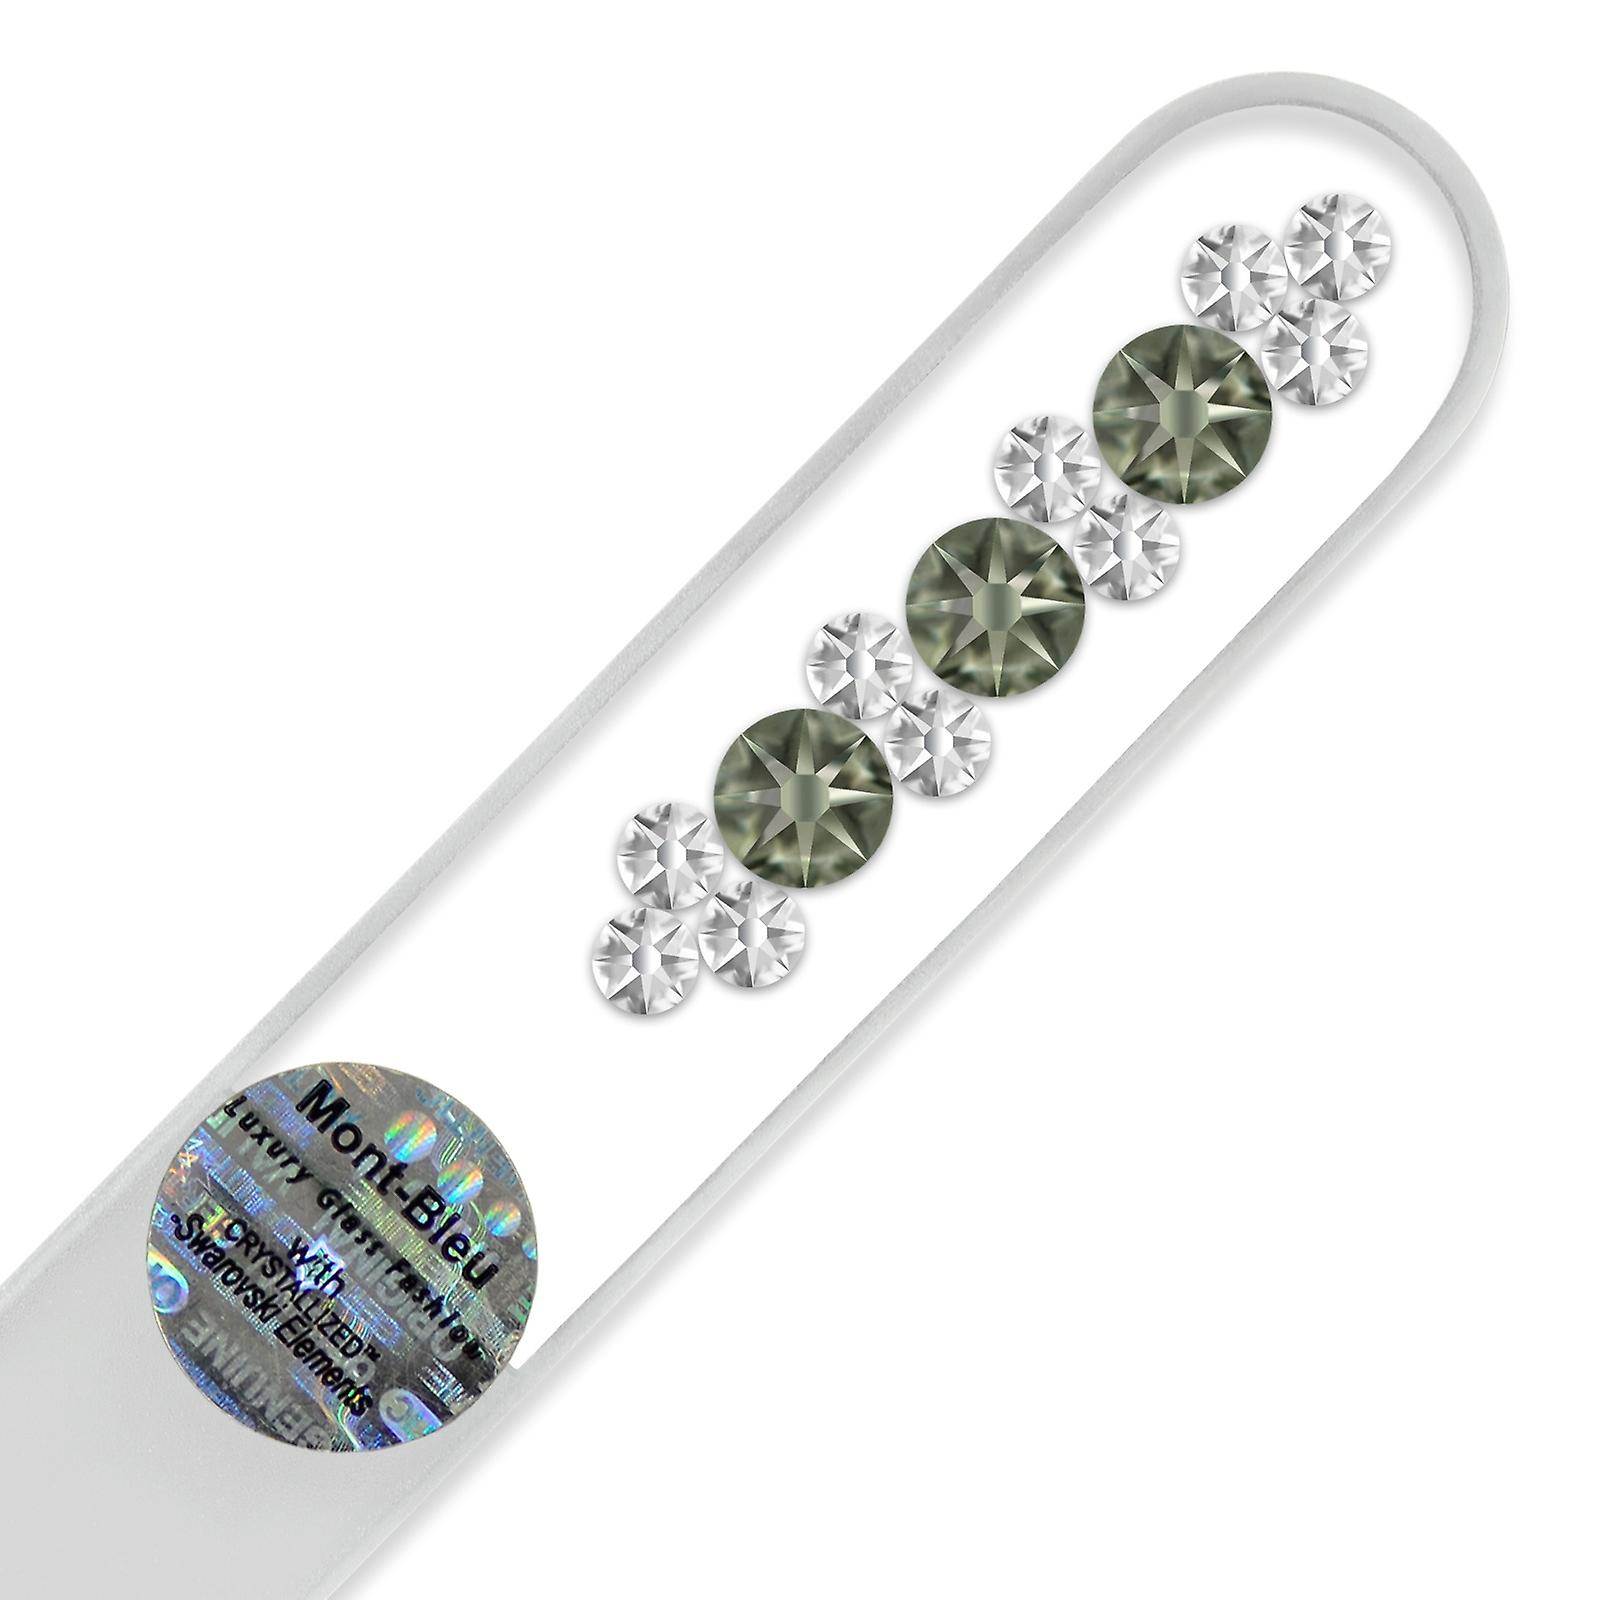 Swarovski nail file OR-M1-12